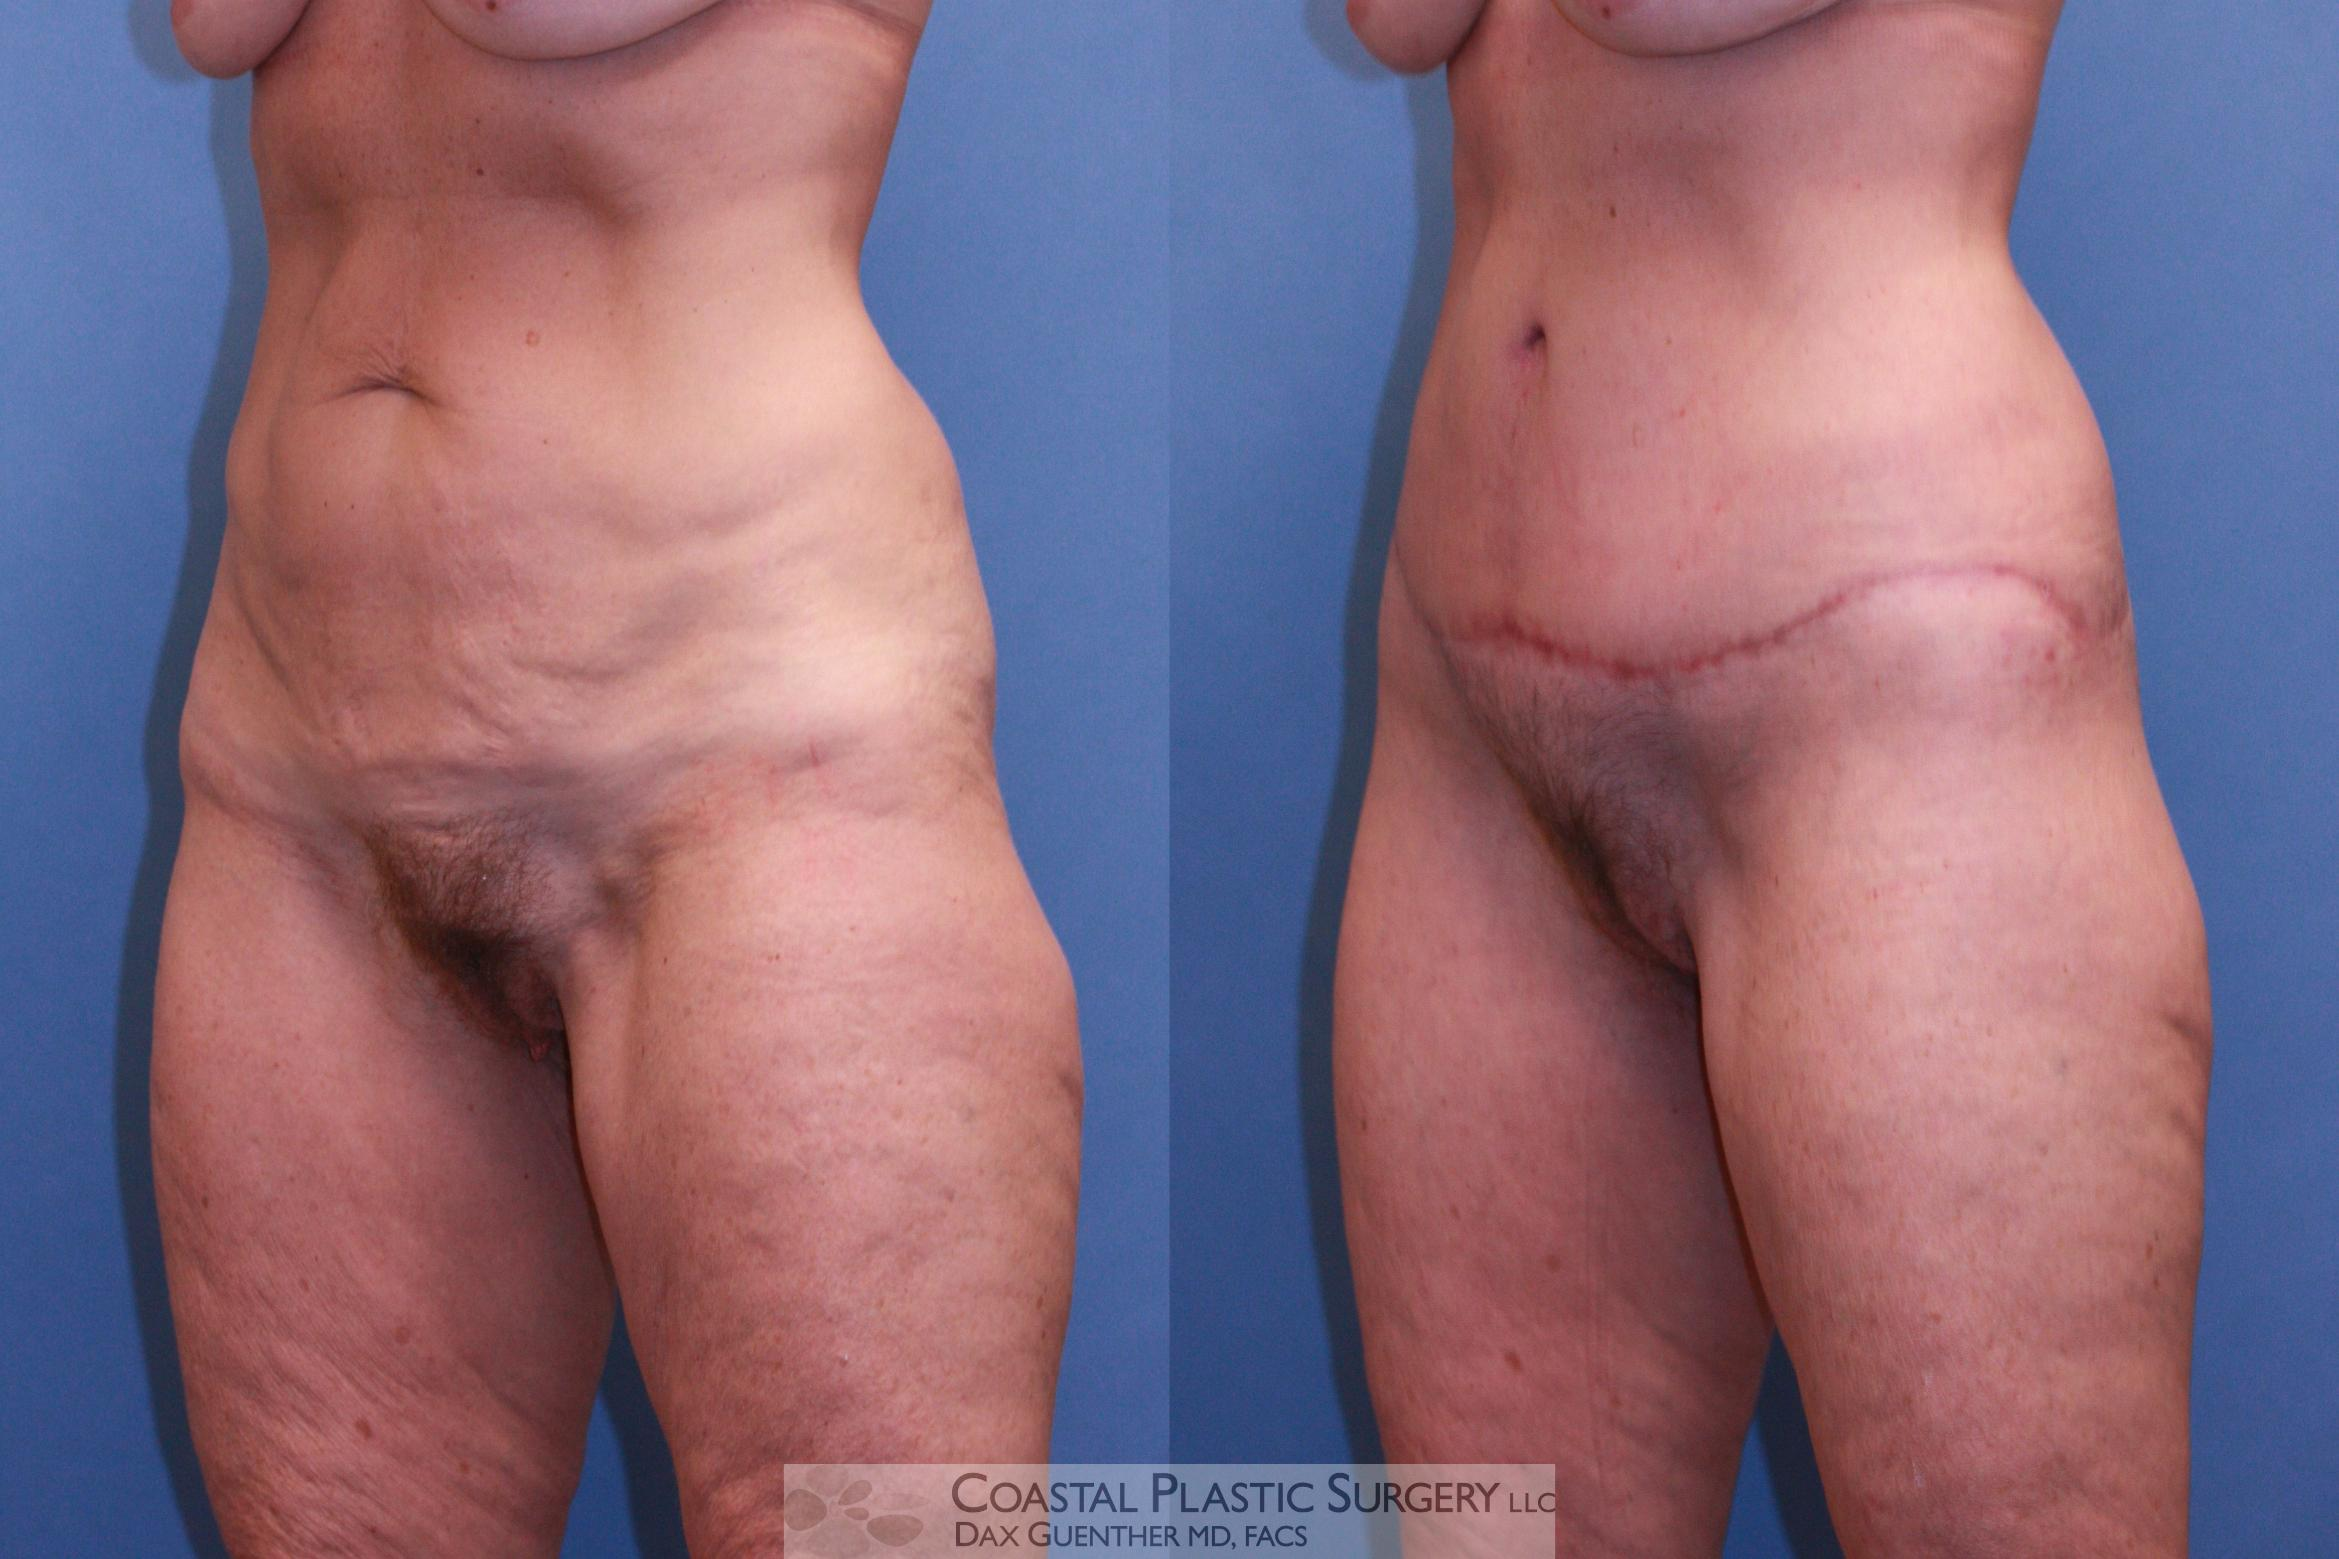 Lower Body Lift (Belt Lipectomy) Before & After Photo | Hingham, Boston & Nantucket, MA | Dax Guenther, MD: Coastal Plastic Surgery